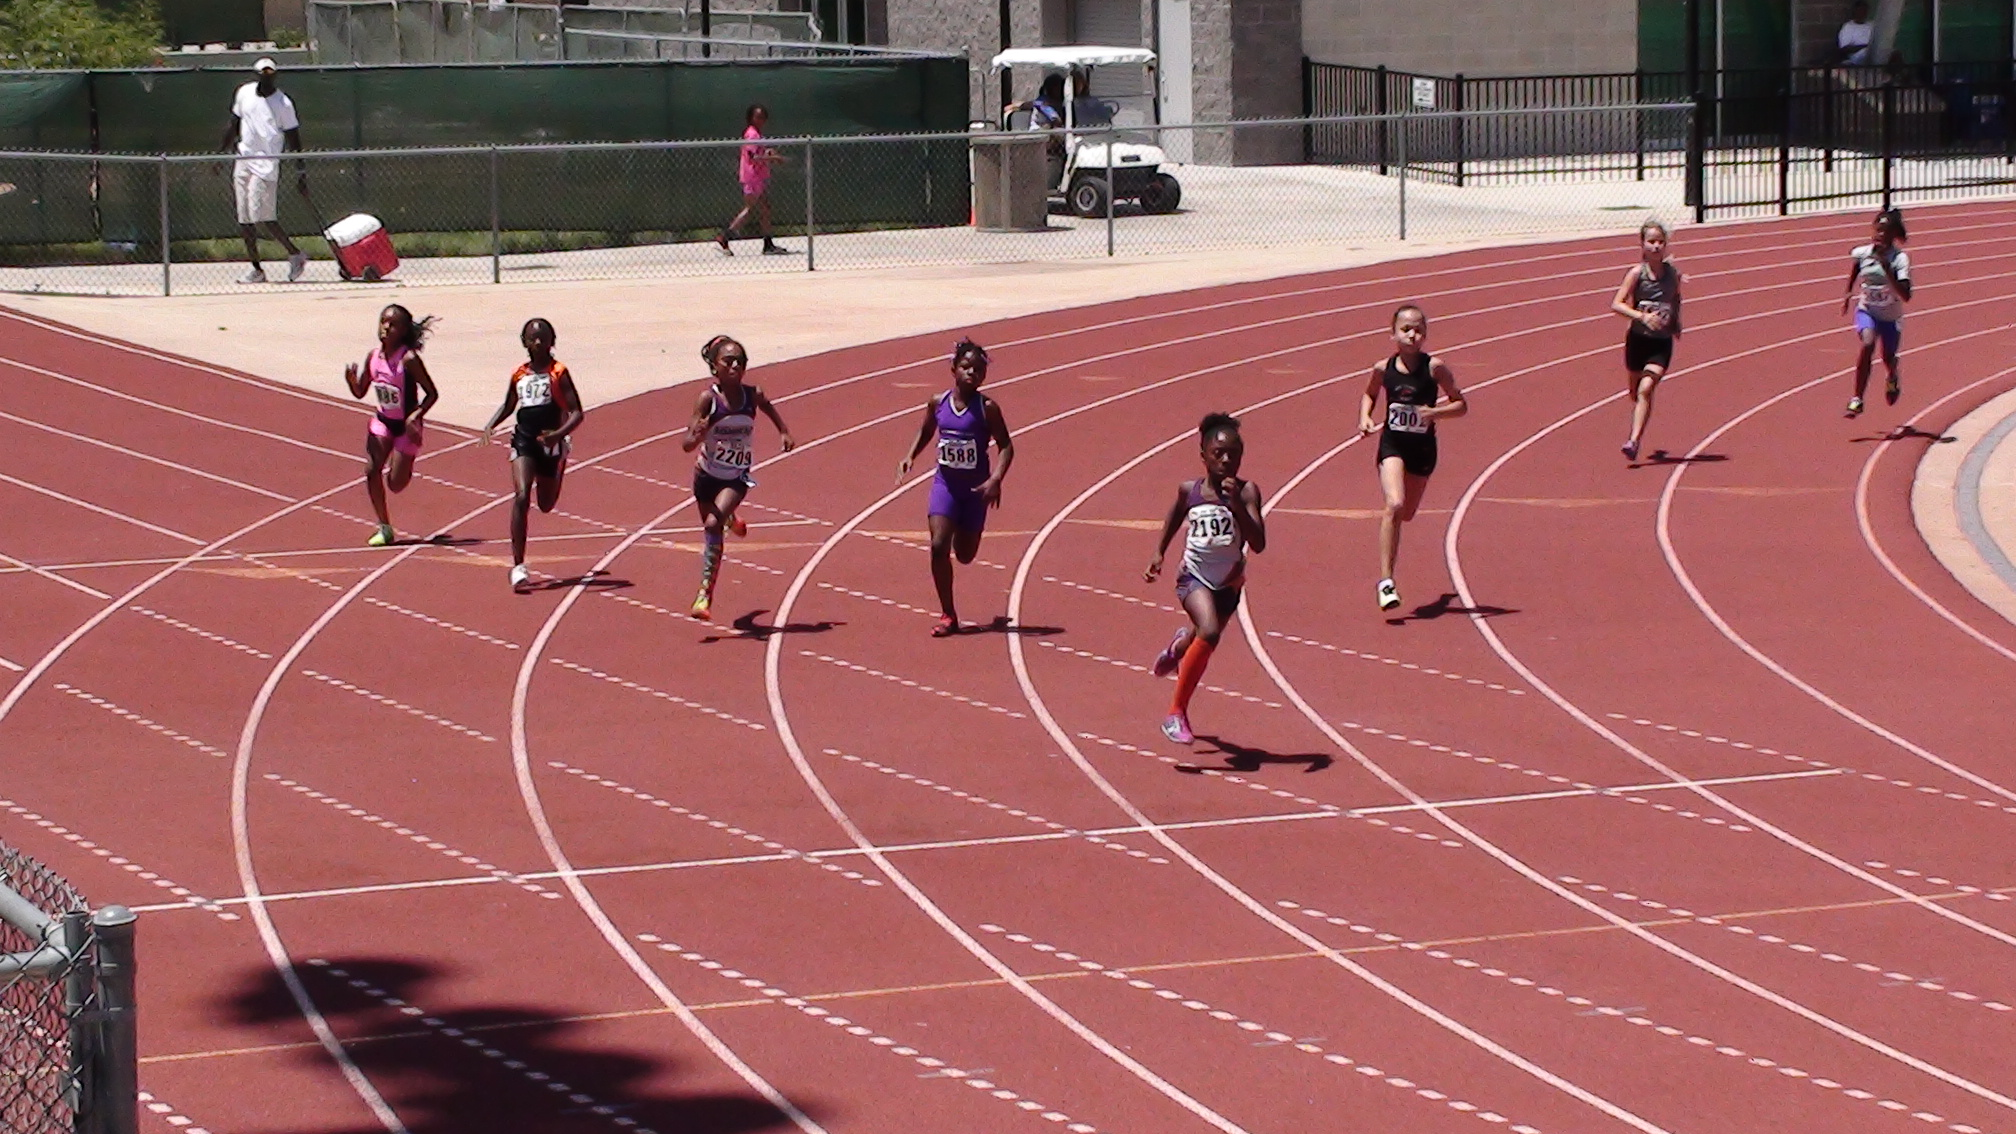 Sonics 9-year old girls in the 200m